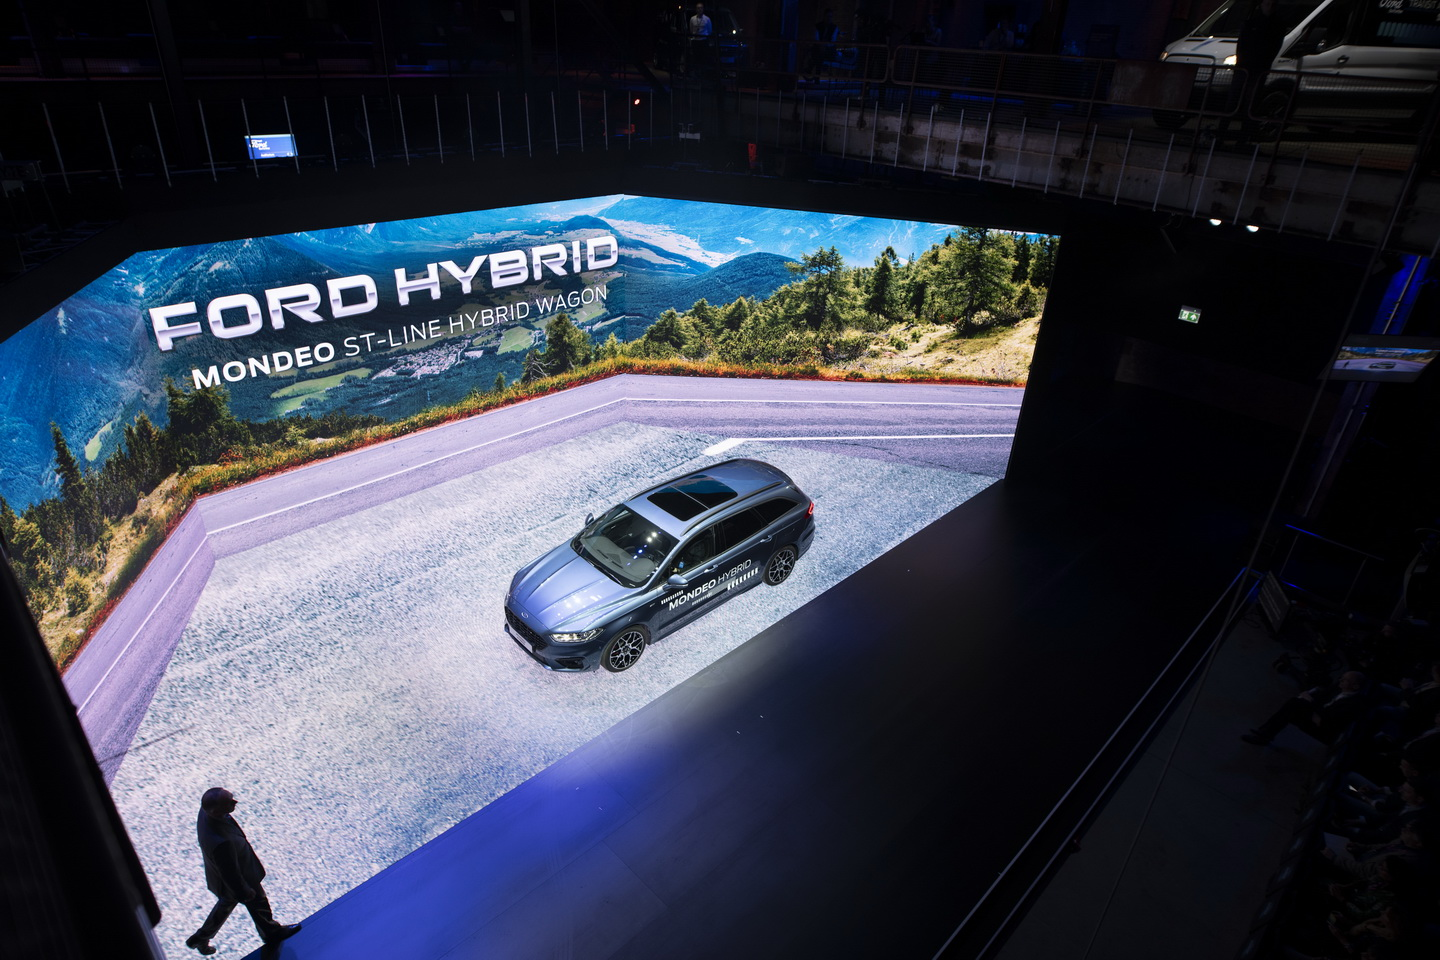 Ford Go Further 2019 event hybrid cars 68